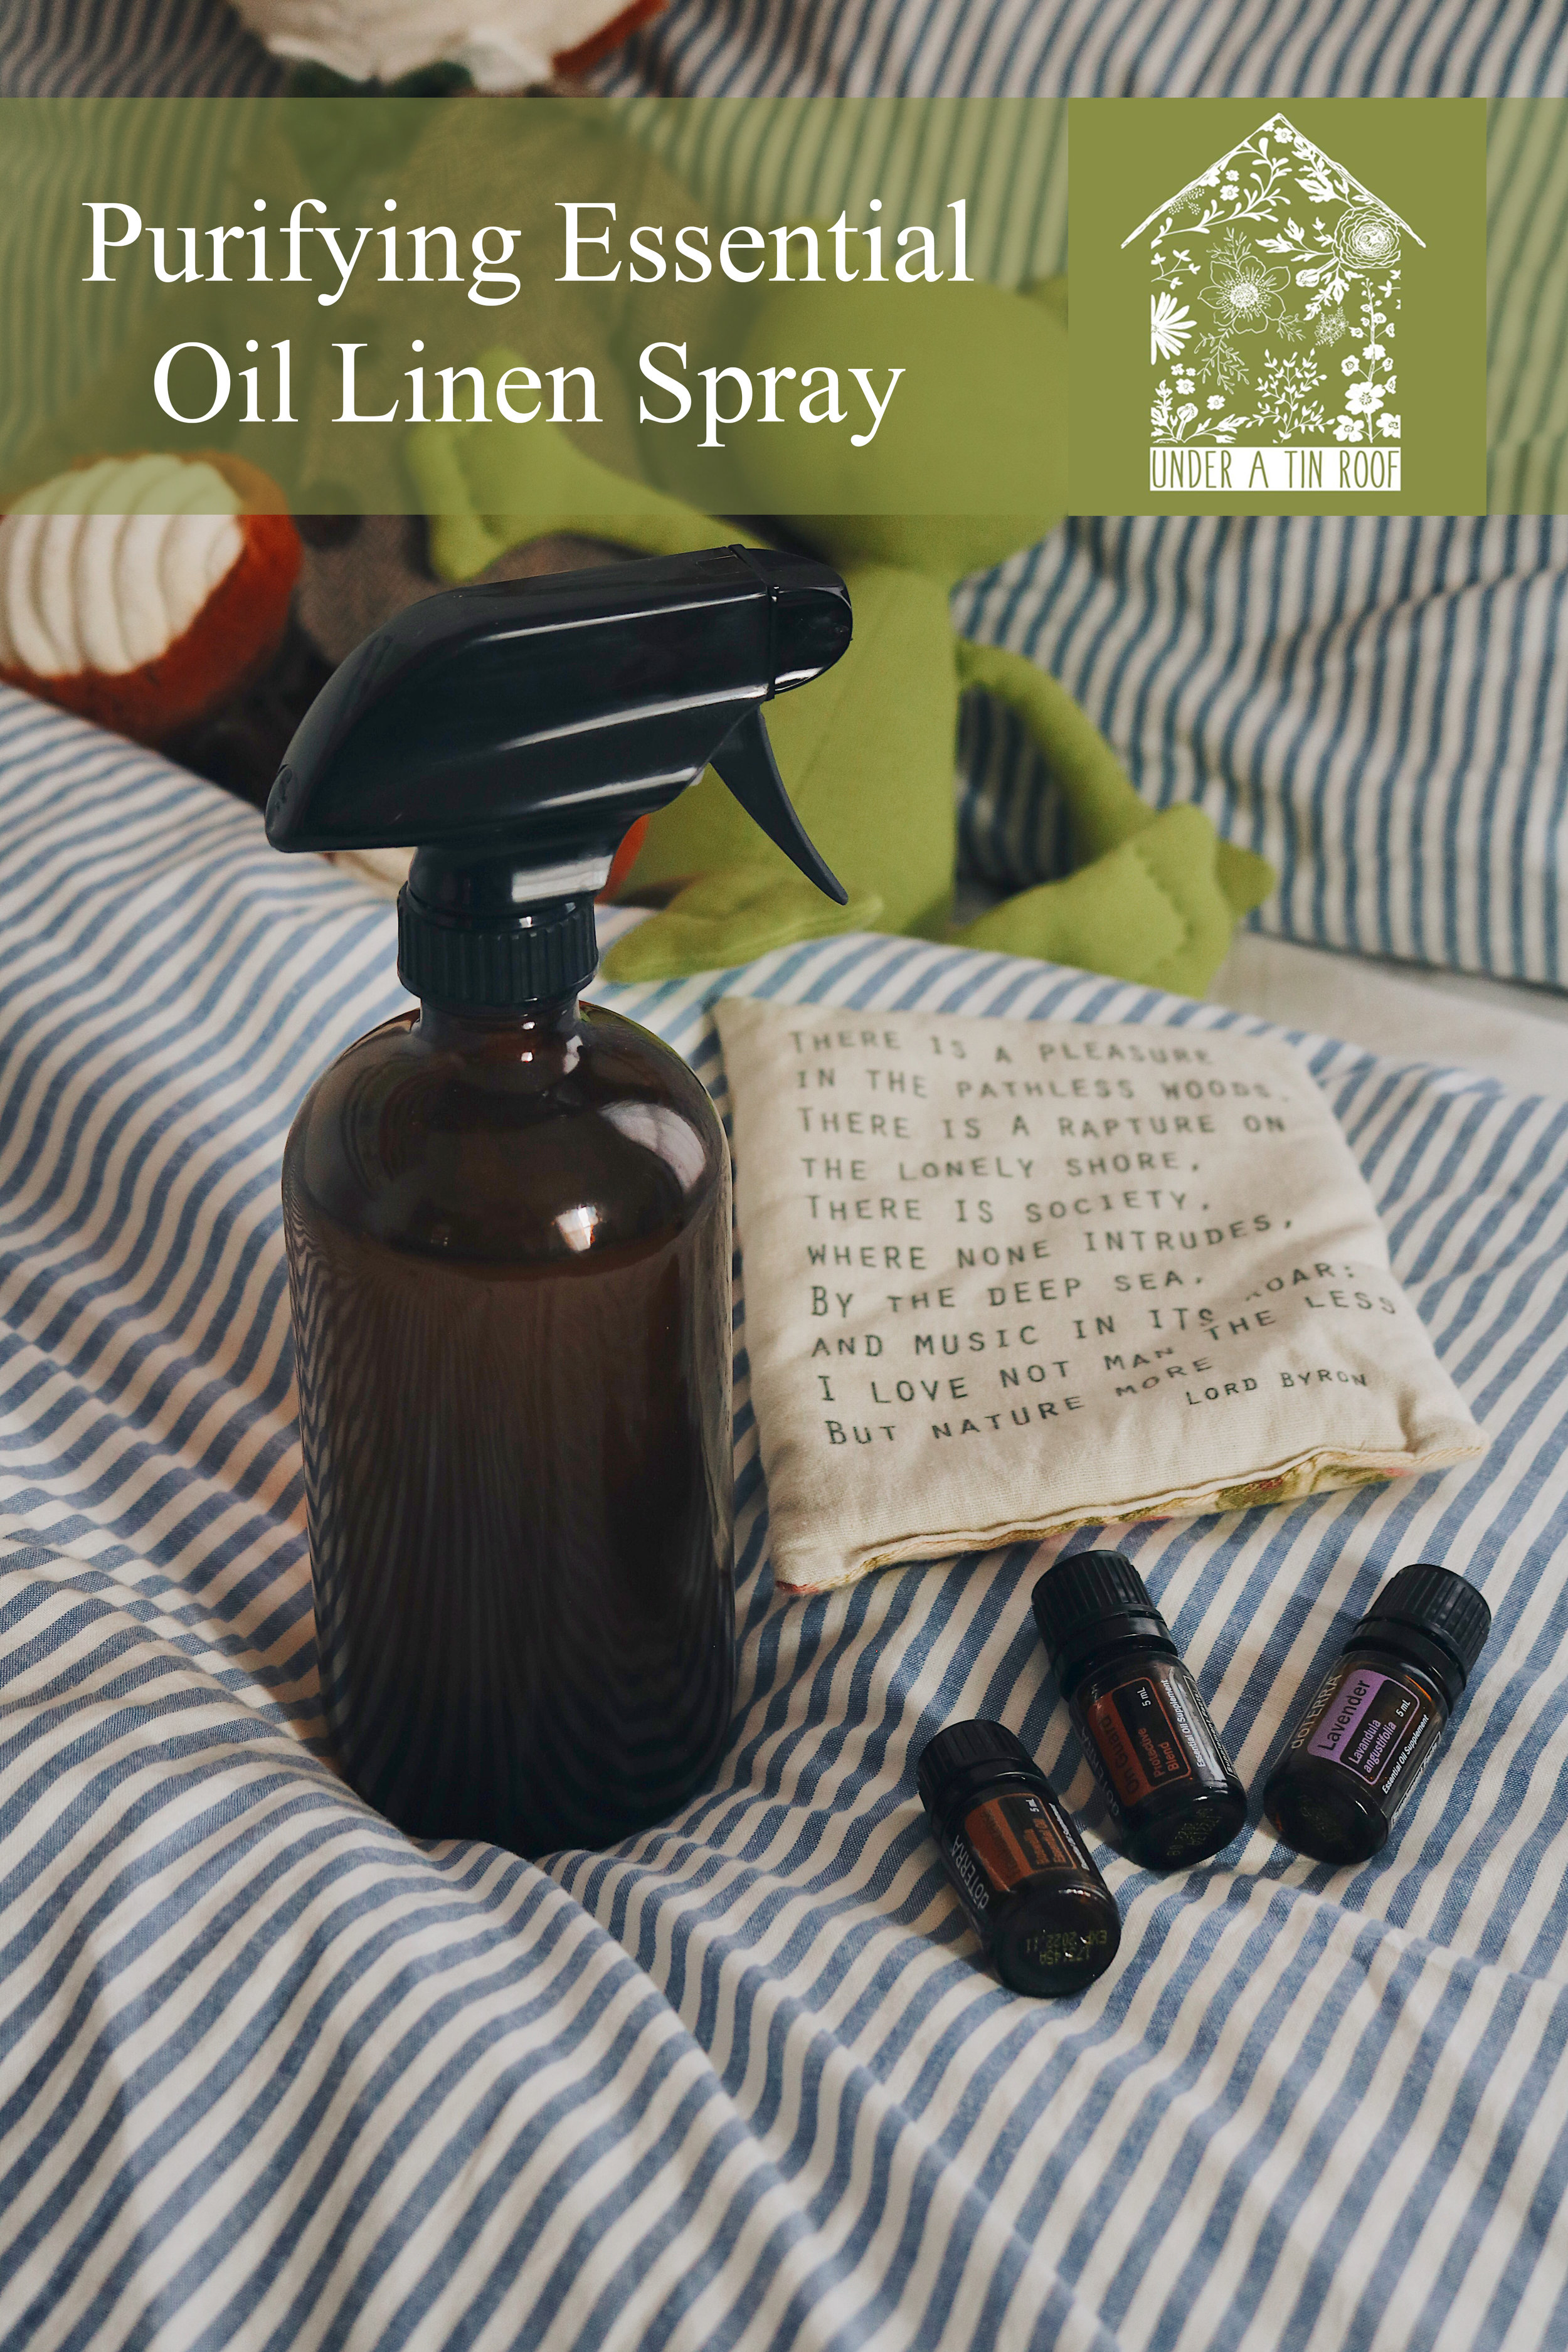 Herbal Interests | Essential Oil Purifying Linen Spray